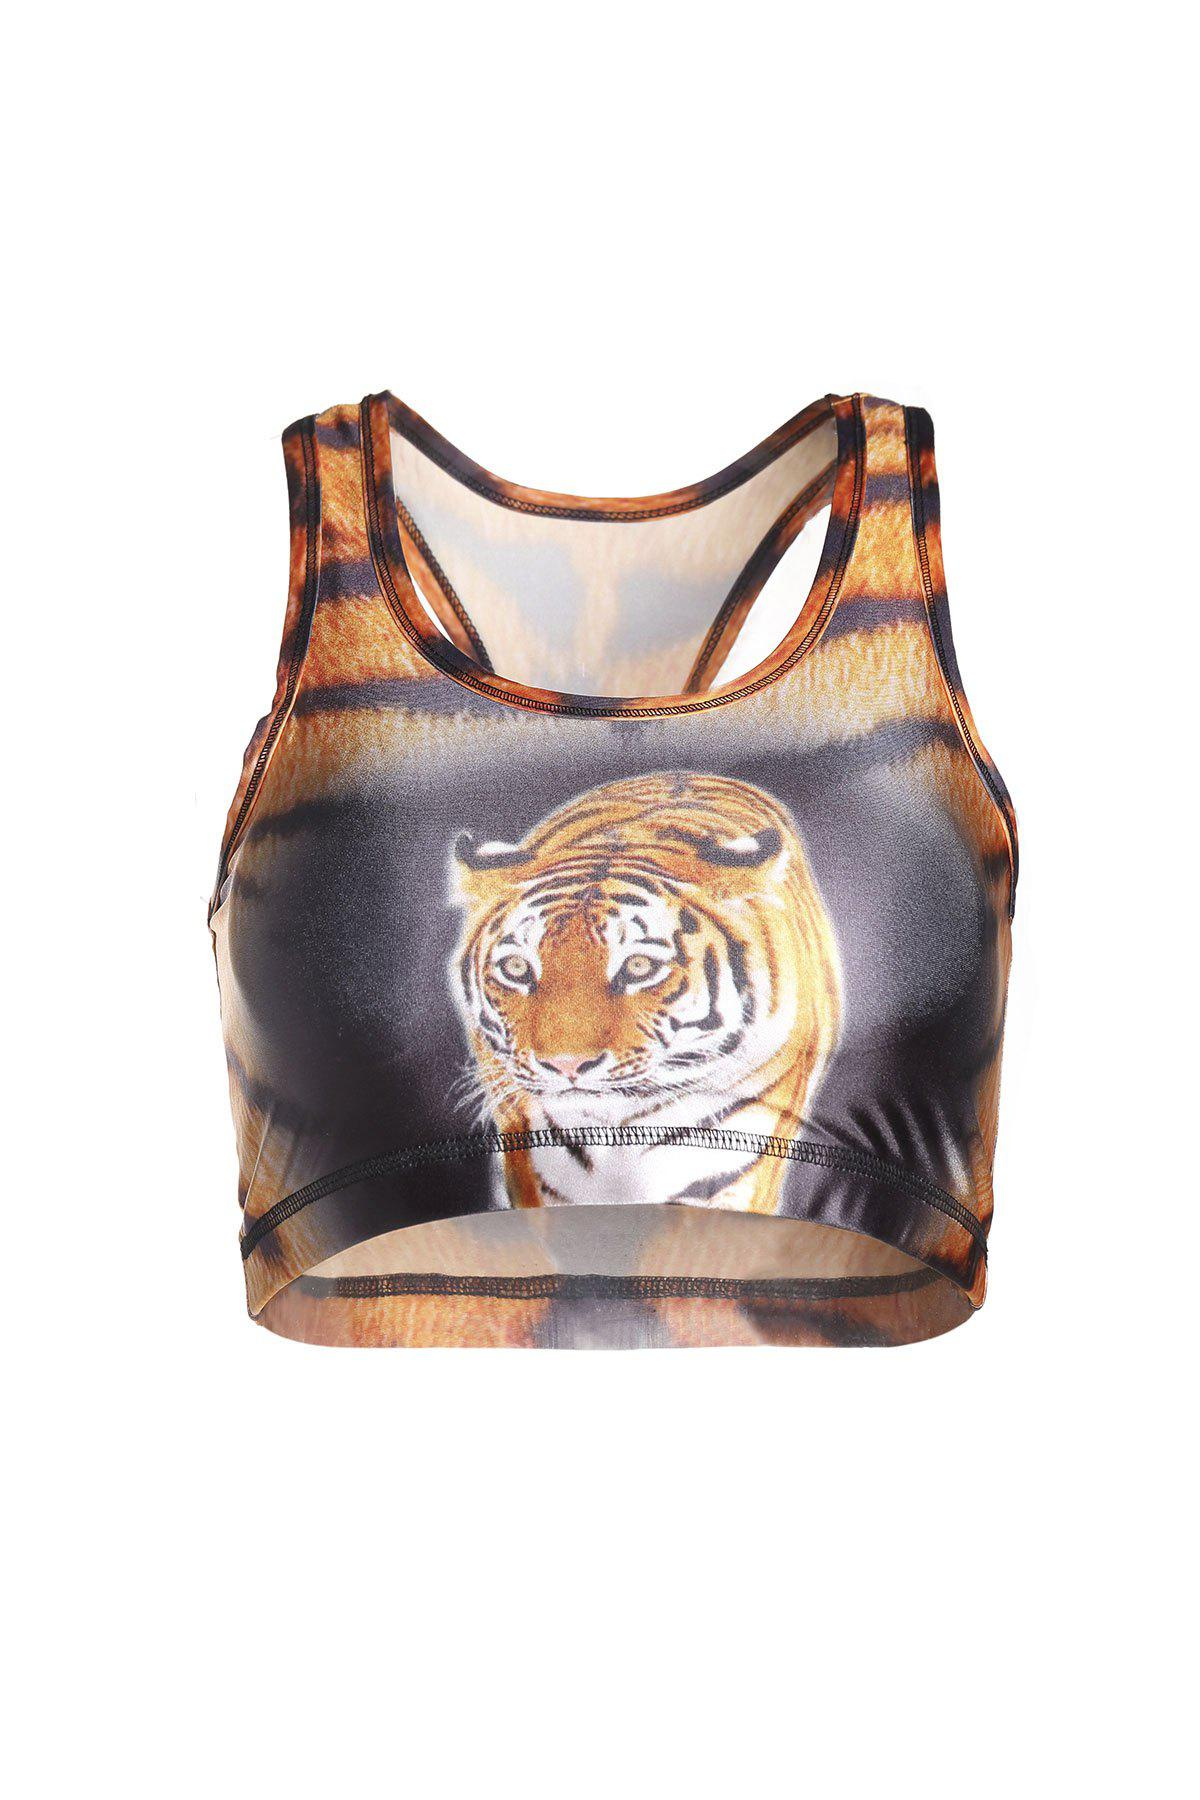 Stylish U Neck Tiger Printed Tank Top For Women funssor diy ultimaker 2 print head kit 3 d printer 0 4mm nozzle hot end assembly kit with 1 meter bowden tube